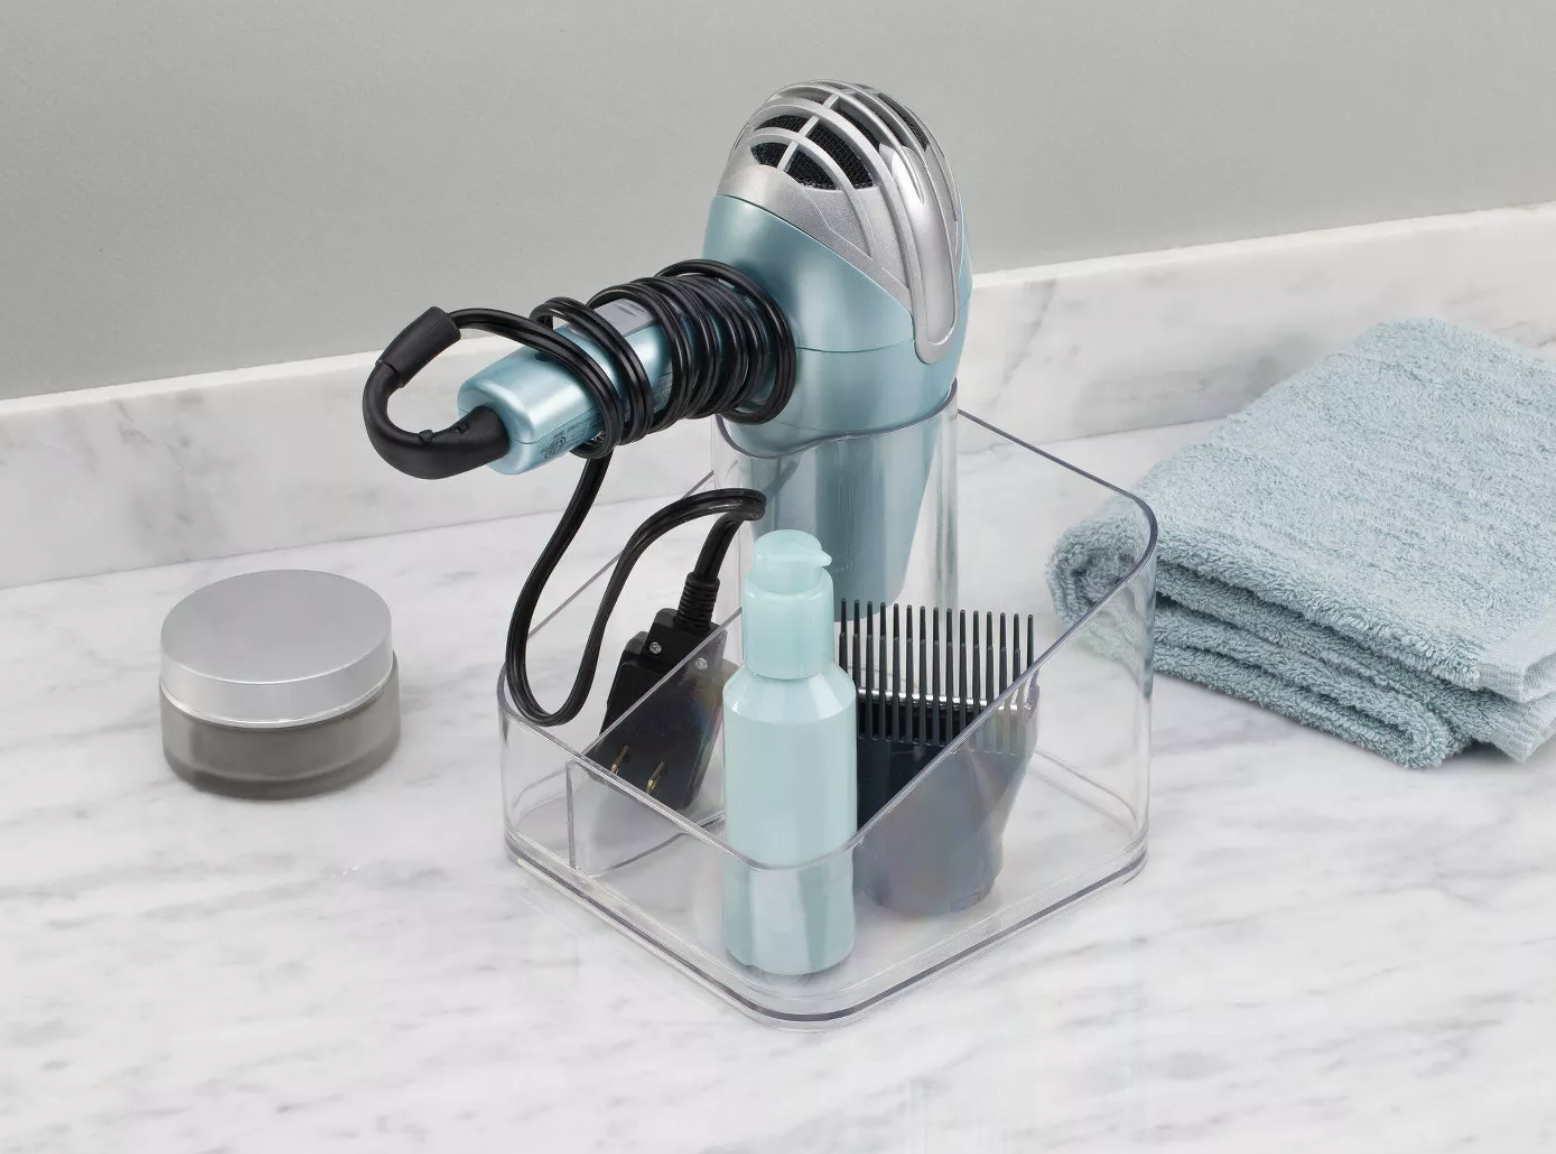 Hair dryer and various accessories placed in bathroom organizer